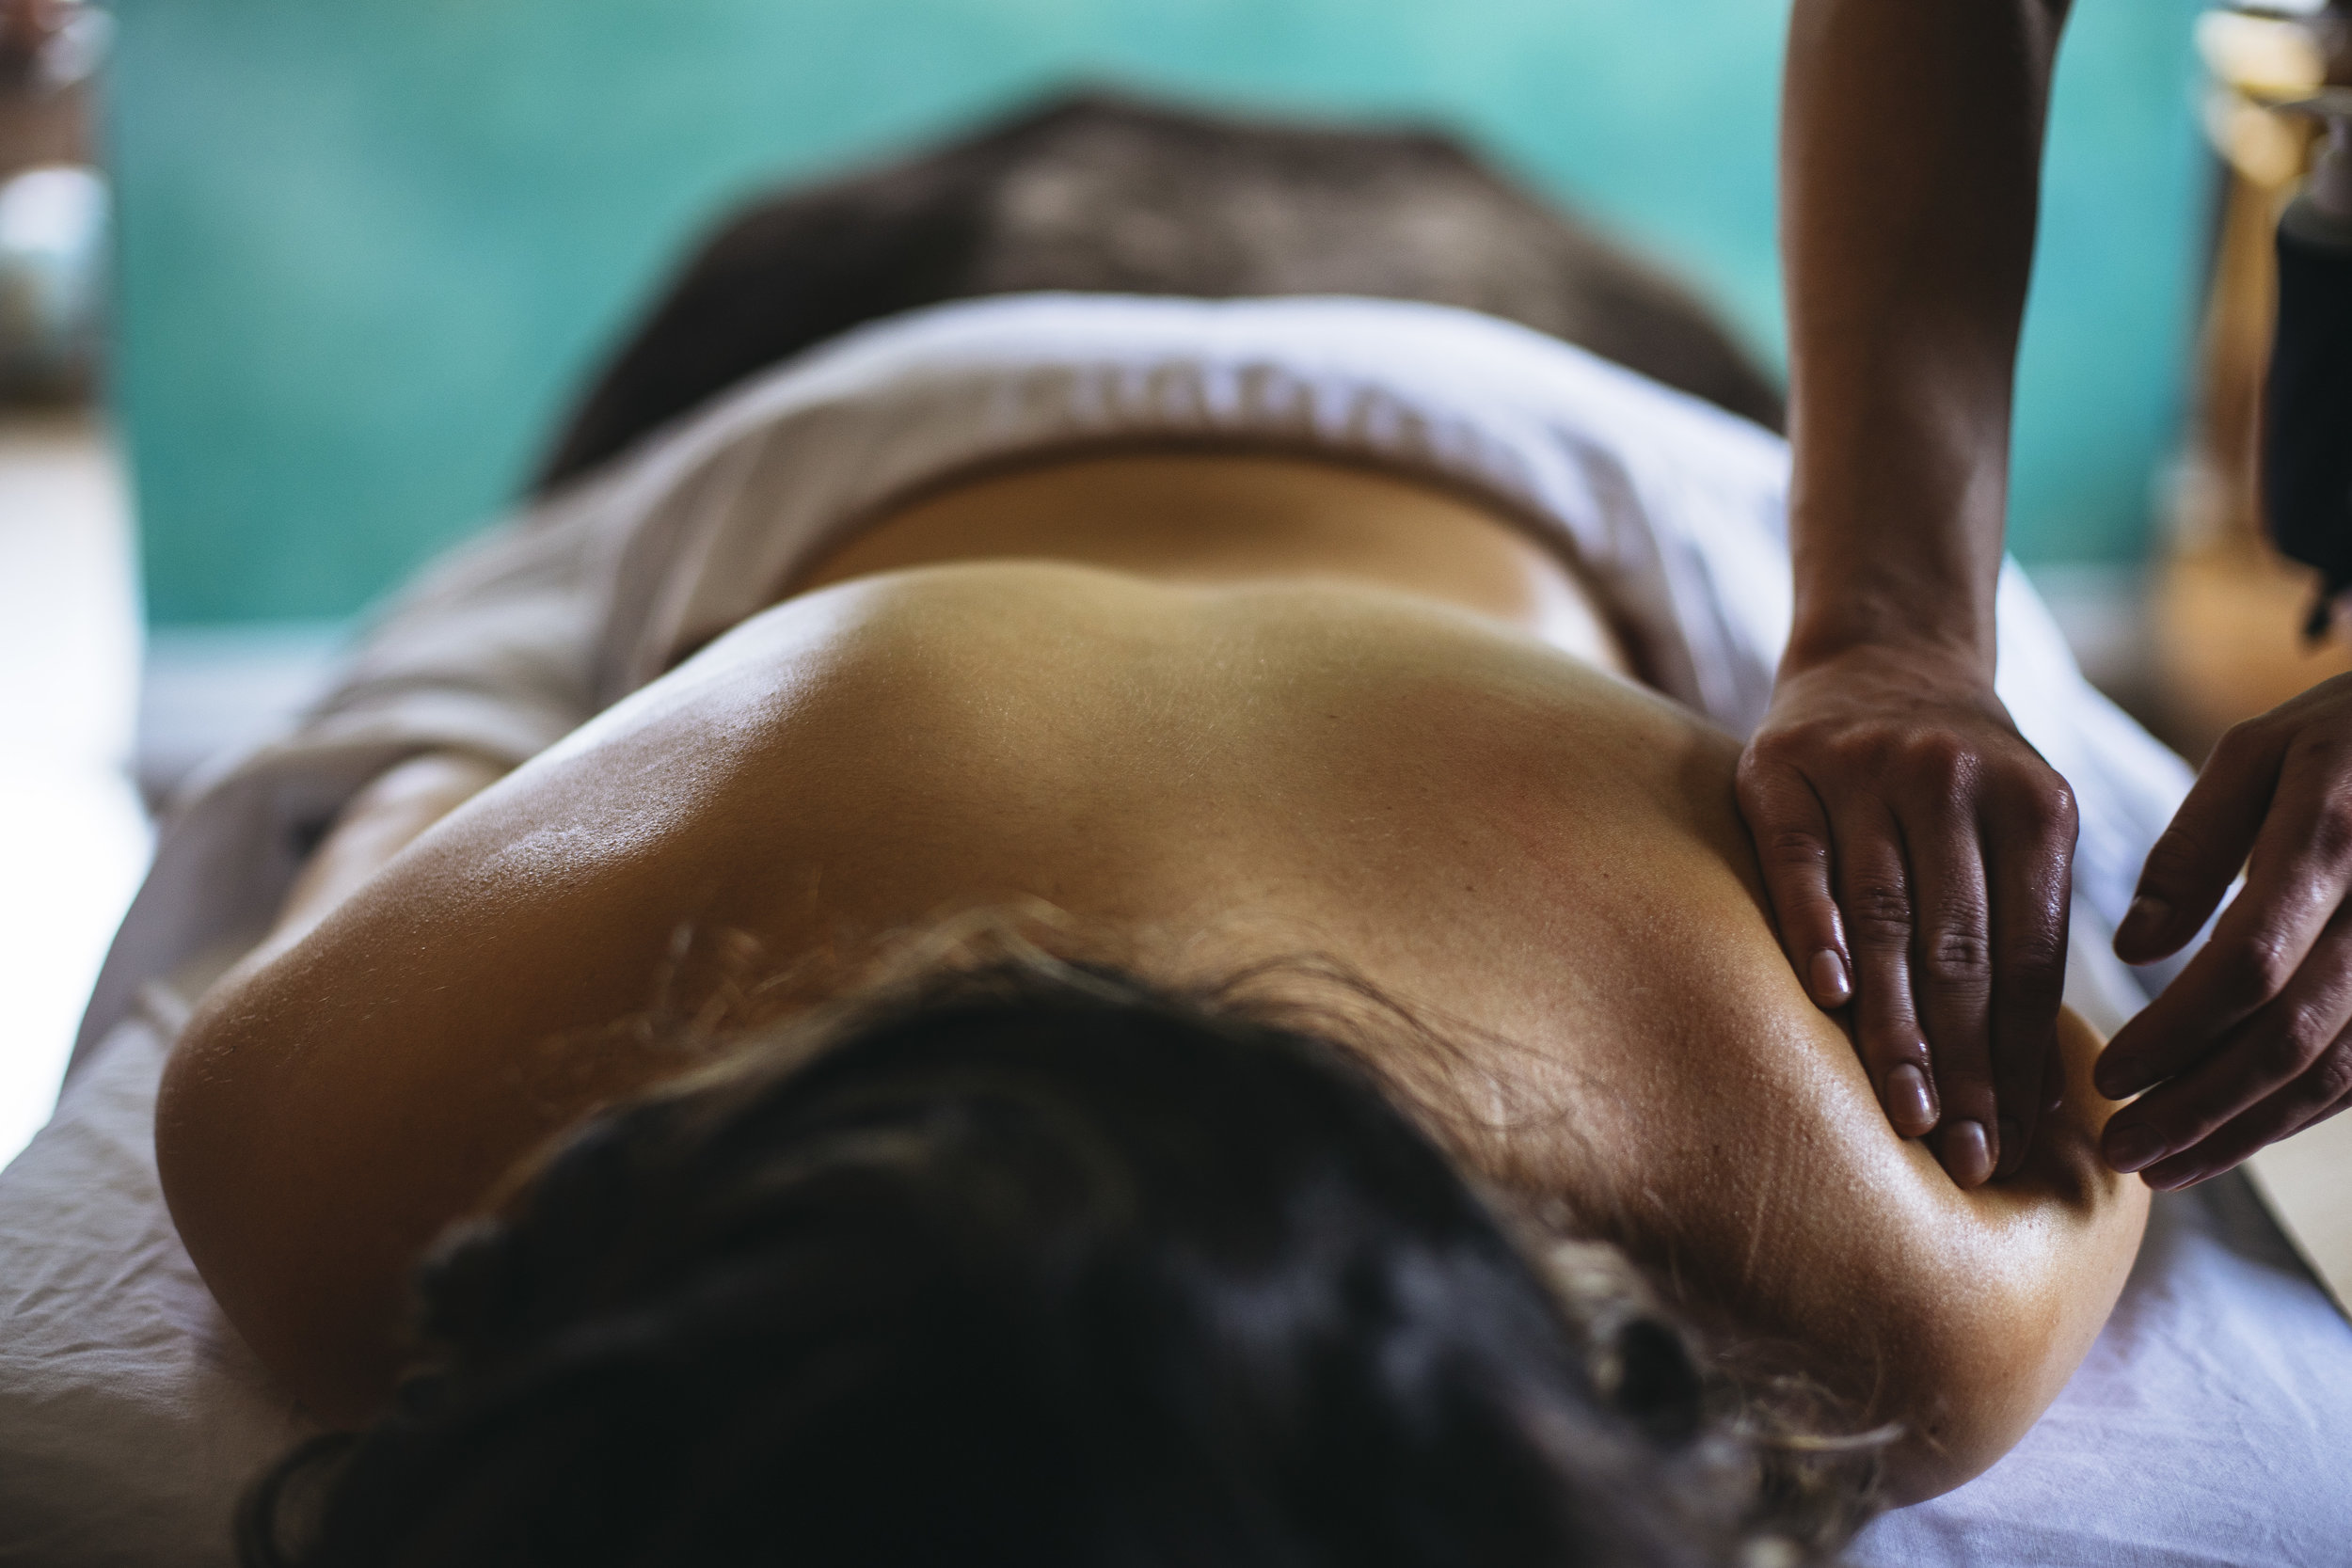 Thank You for visiting! - Mountain Bliss Therapeutics is here to help you along your journey of mind-body connection, through the therapeutic process of massage therapy.